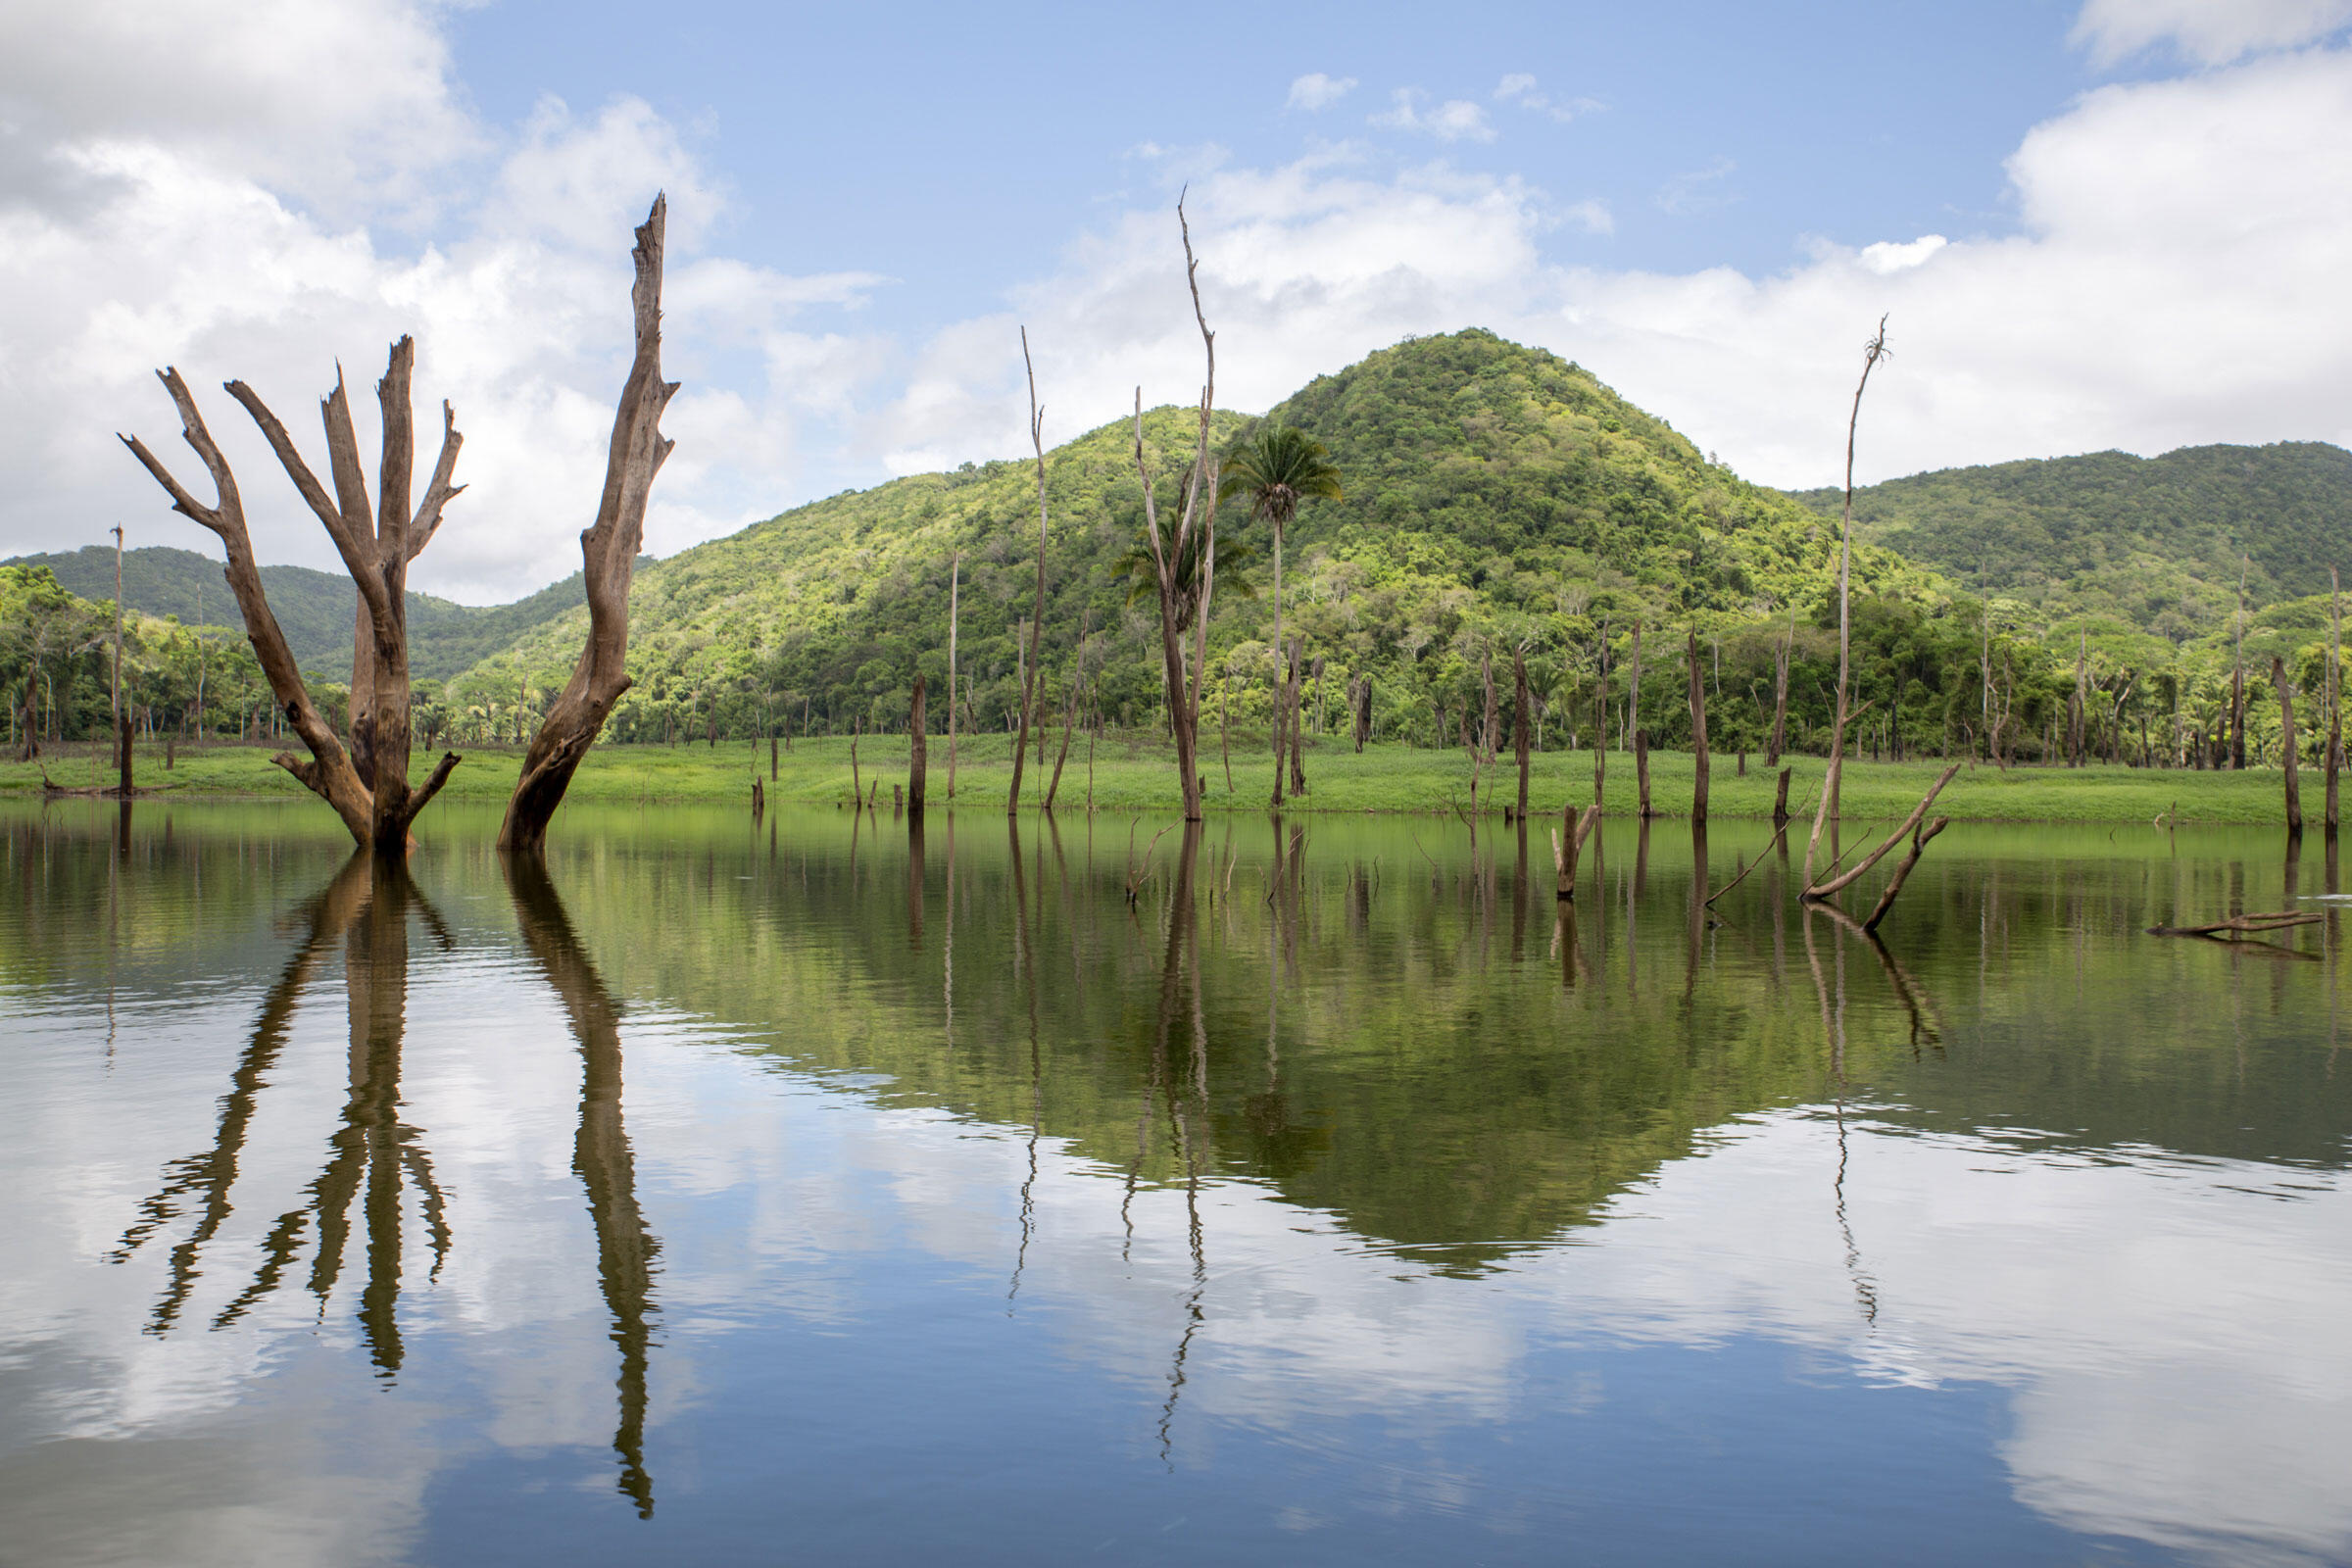 Tree stumps and snags sit in the depleted Macal River. Camilla Cerea/Audubon